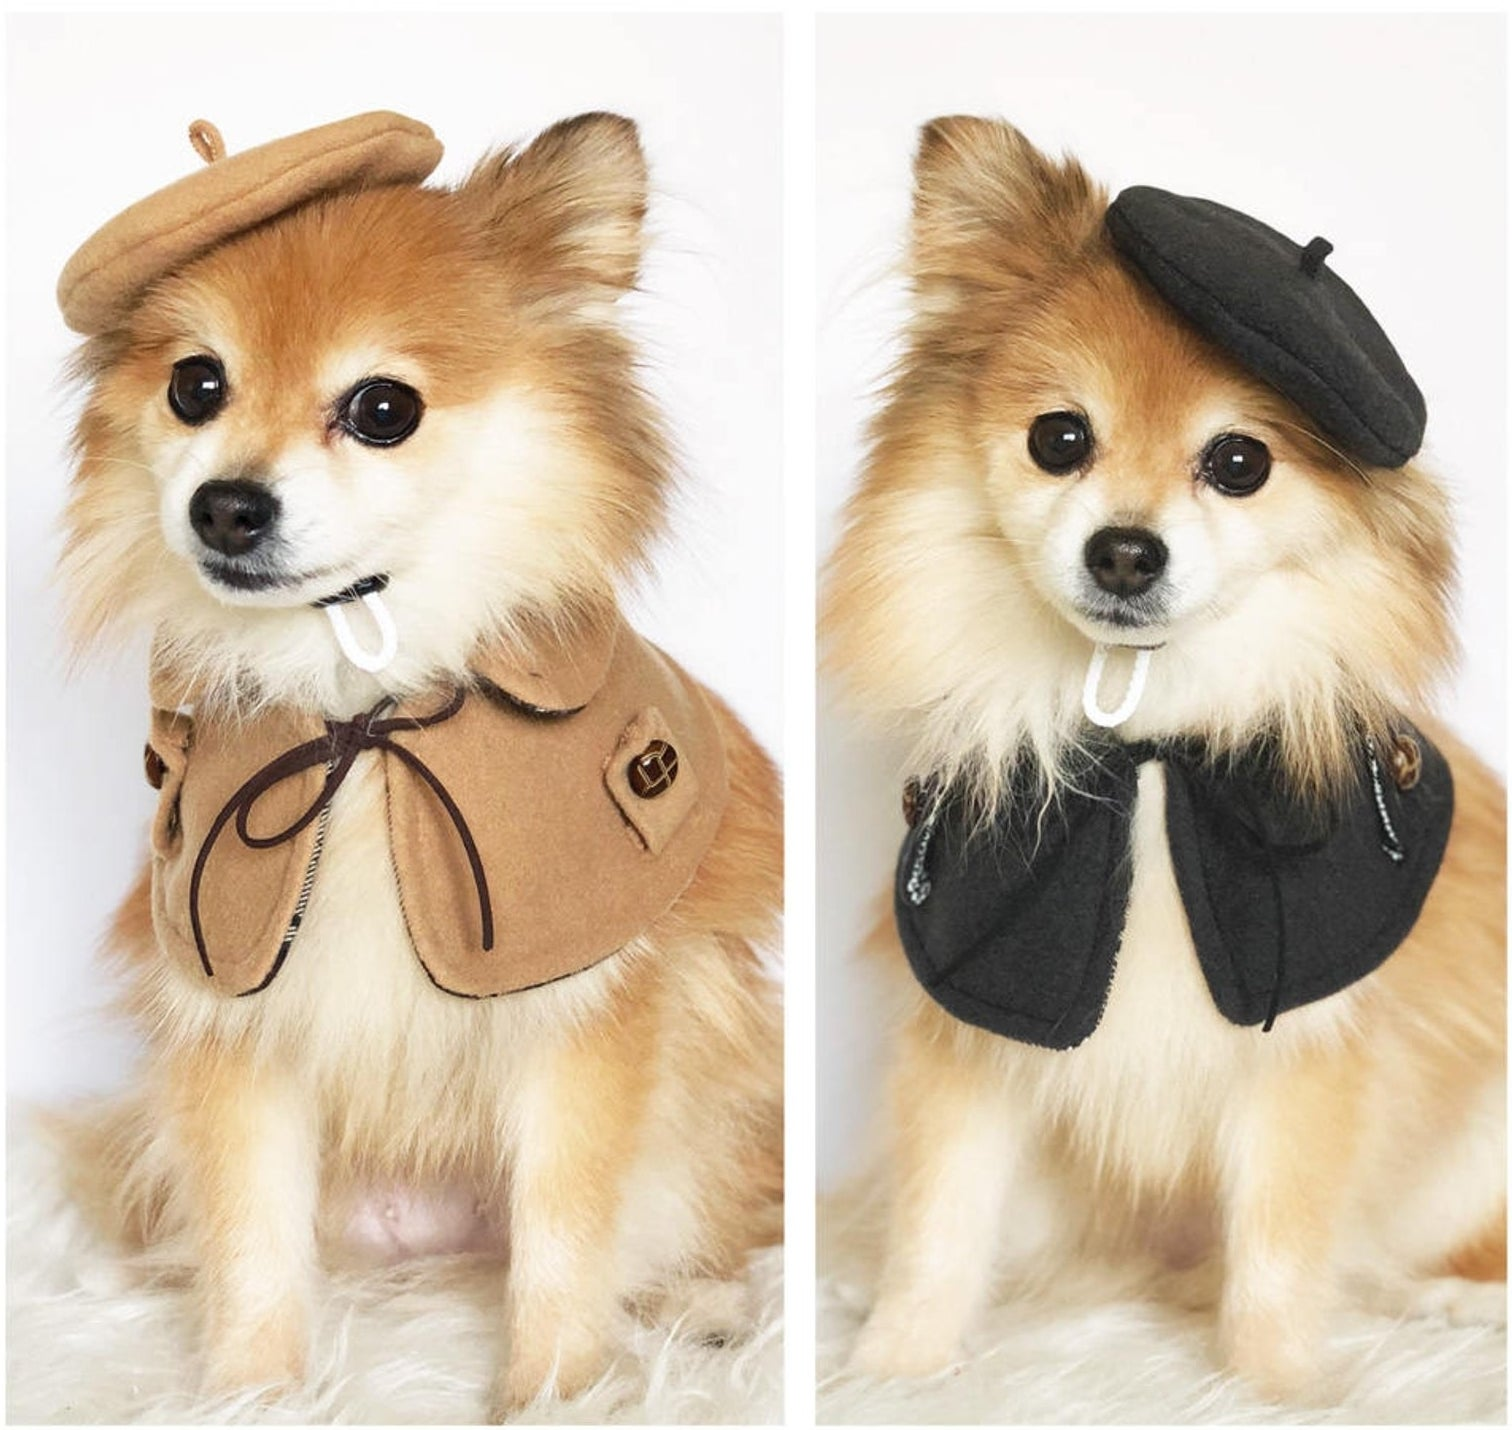 a small dog wearing a beret and cape in brown and black